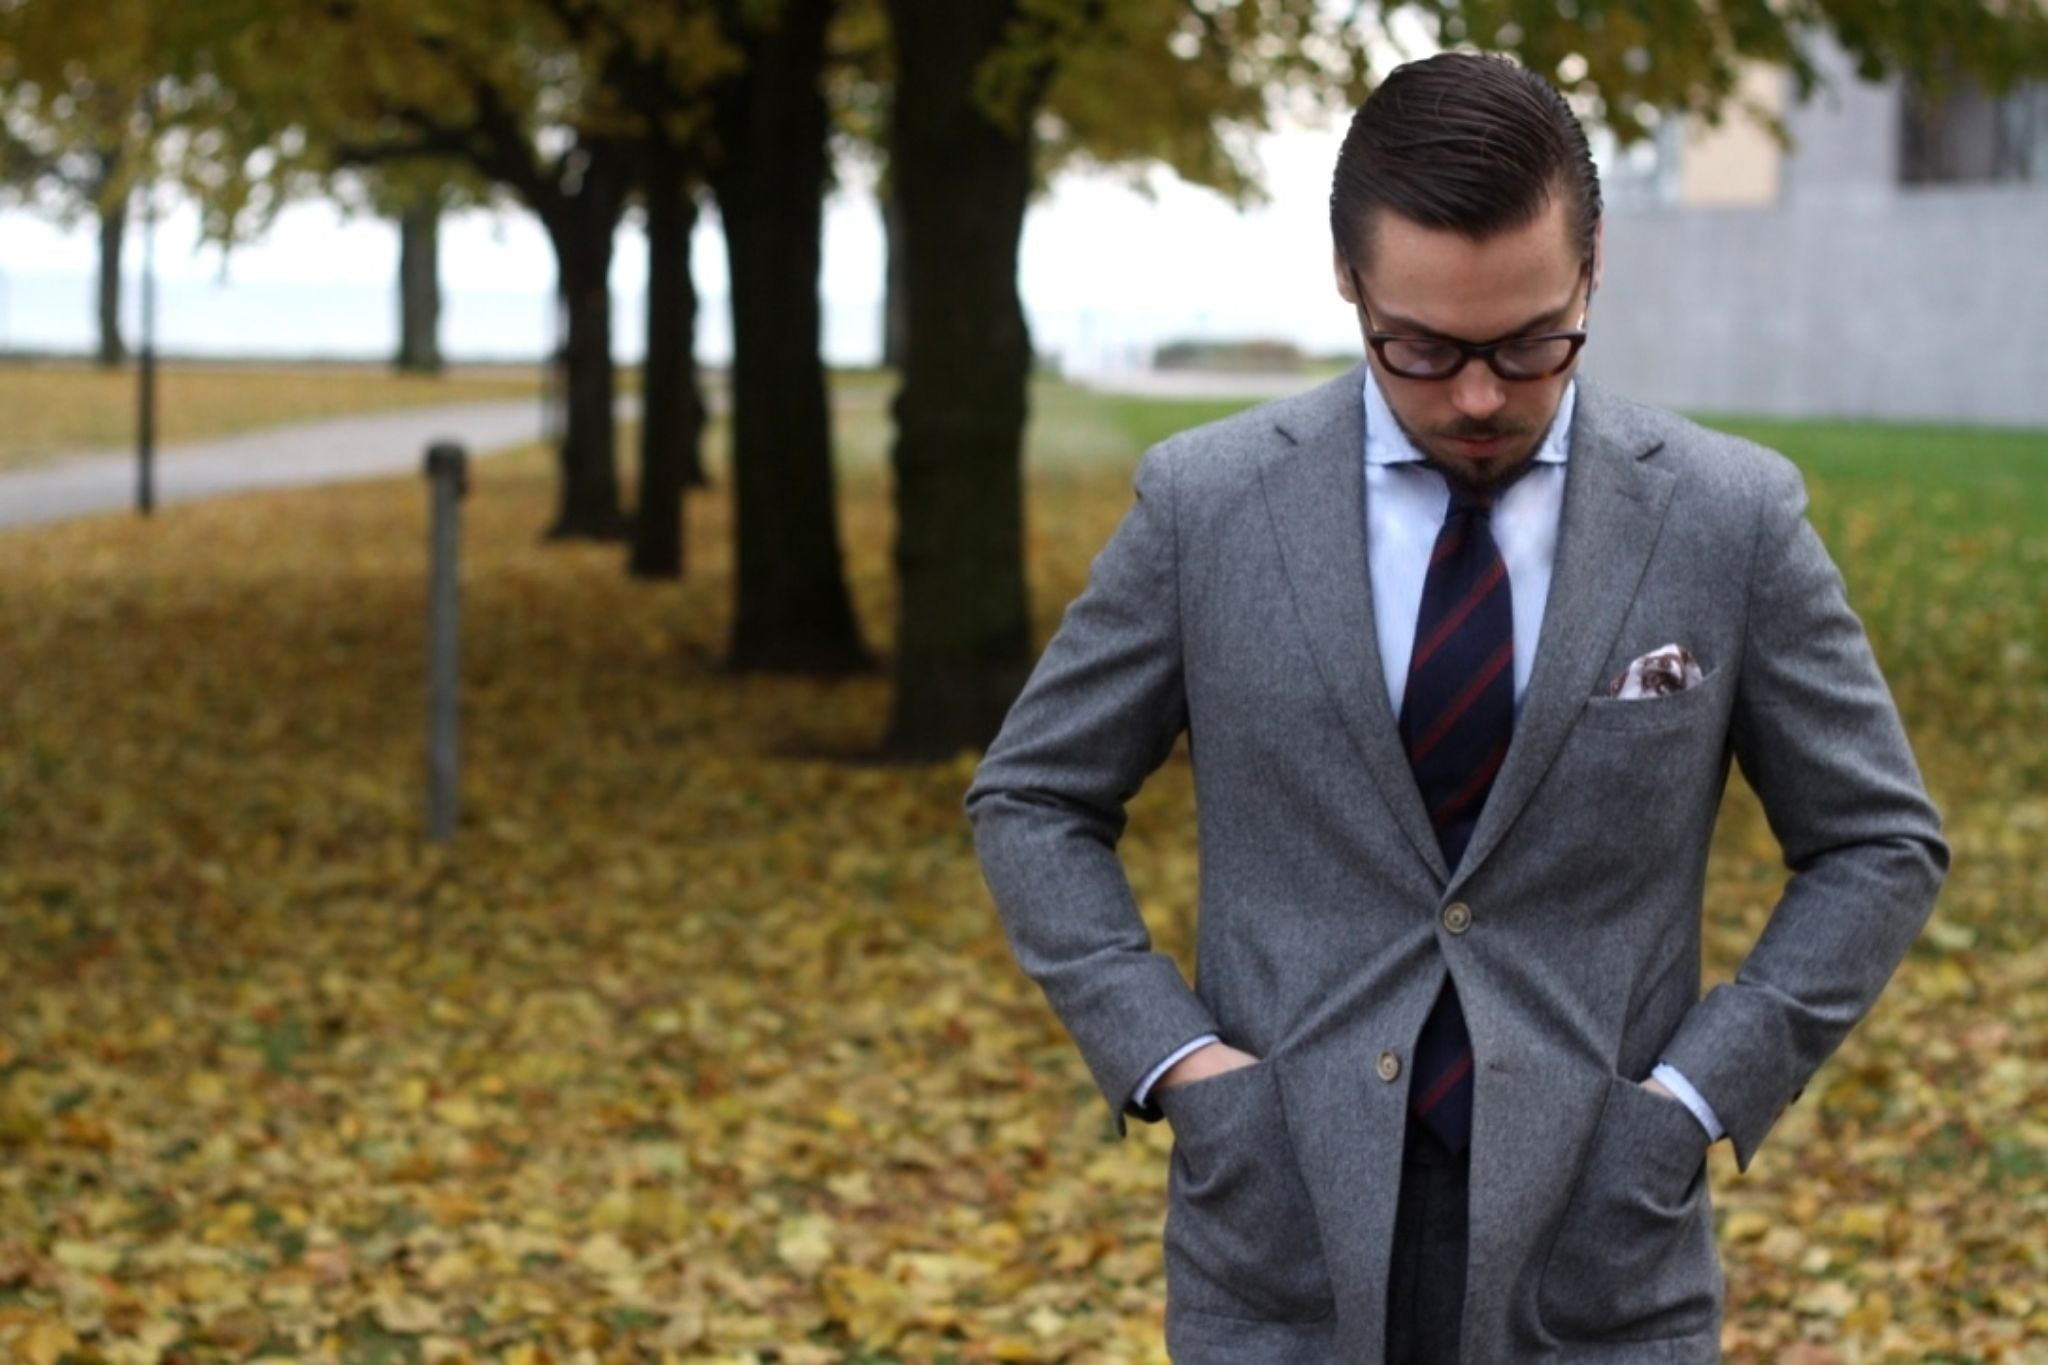 Suit with cashmere tie - mid-gray flannel wool is a good choice for fall and winter